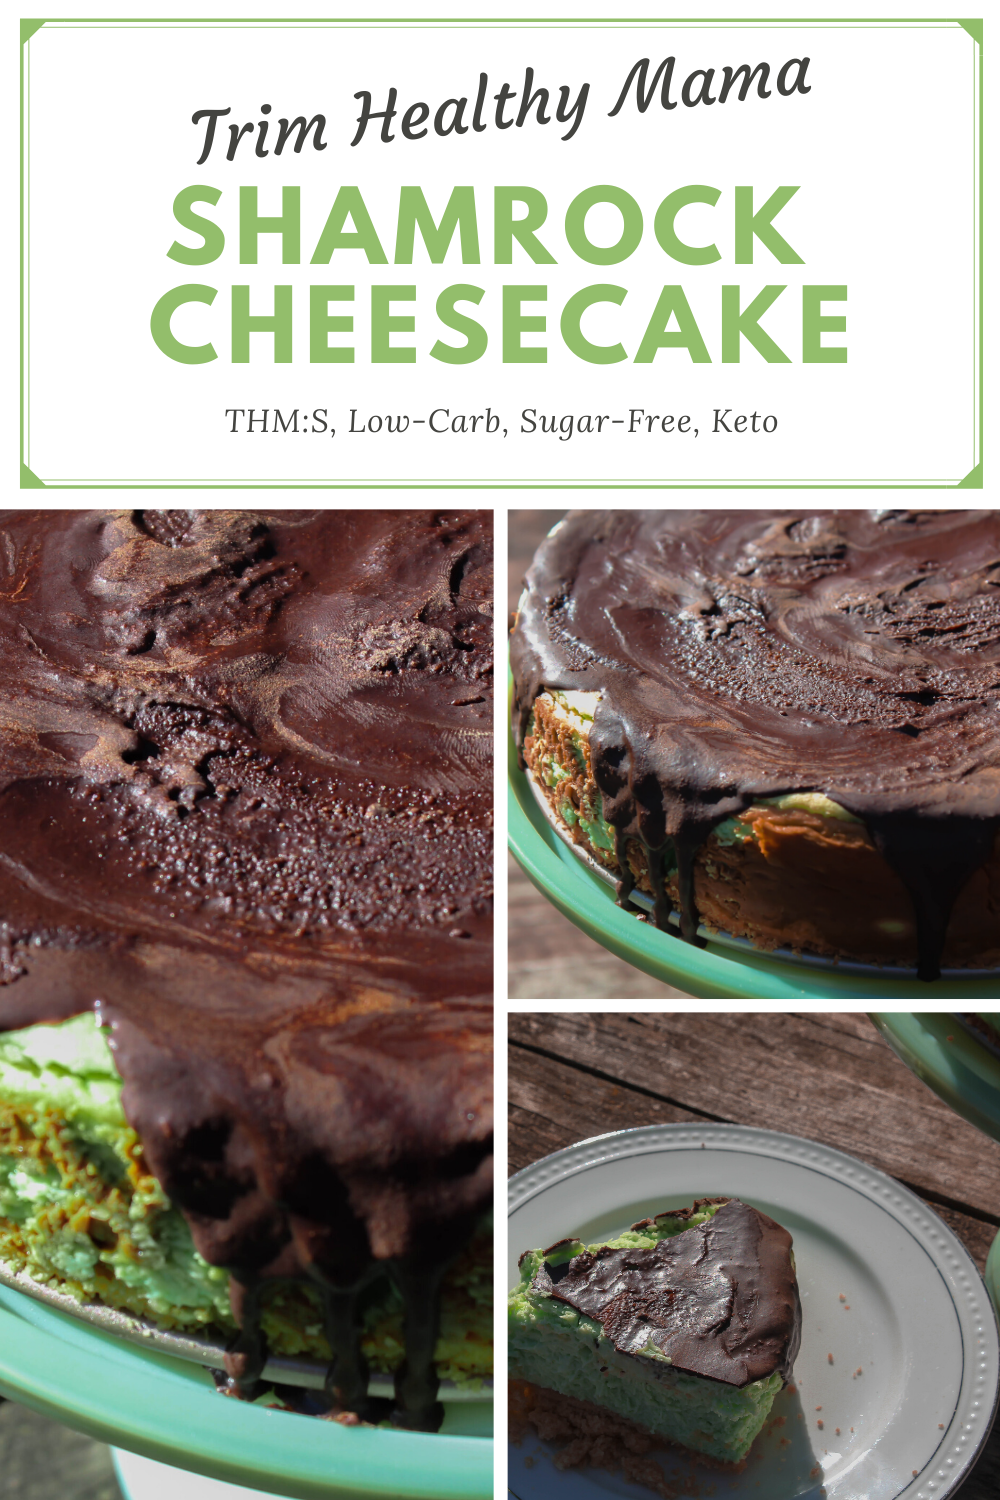 My Shamrock Cheesecake is the perfect way to celebrate St. Patrick's Day! A minty cheesecake with a delectable chocolate topping. What could be better?